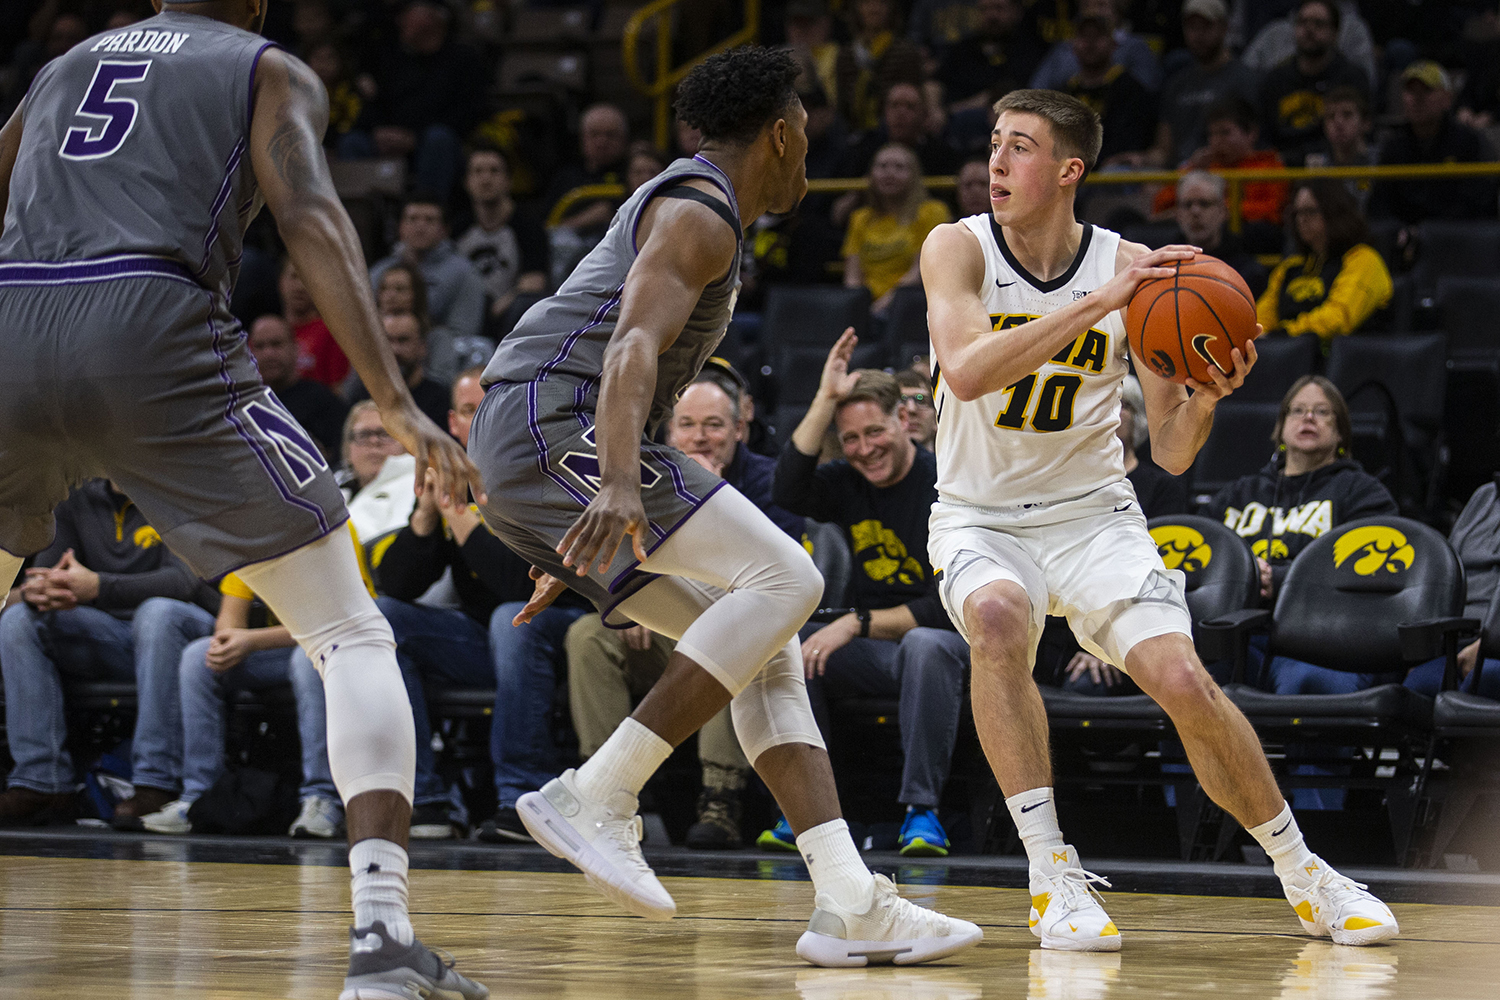 Iowa guard Joe Wieskamp looks to pass the ball during the Iowa/Northwestern men's basketball game at Carver-Hawkeye Arena on Sunday, February 10, 2019. The Hawkeyes defeated the Wildcats, 80-79.